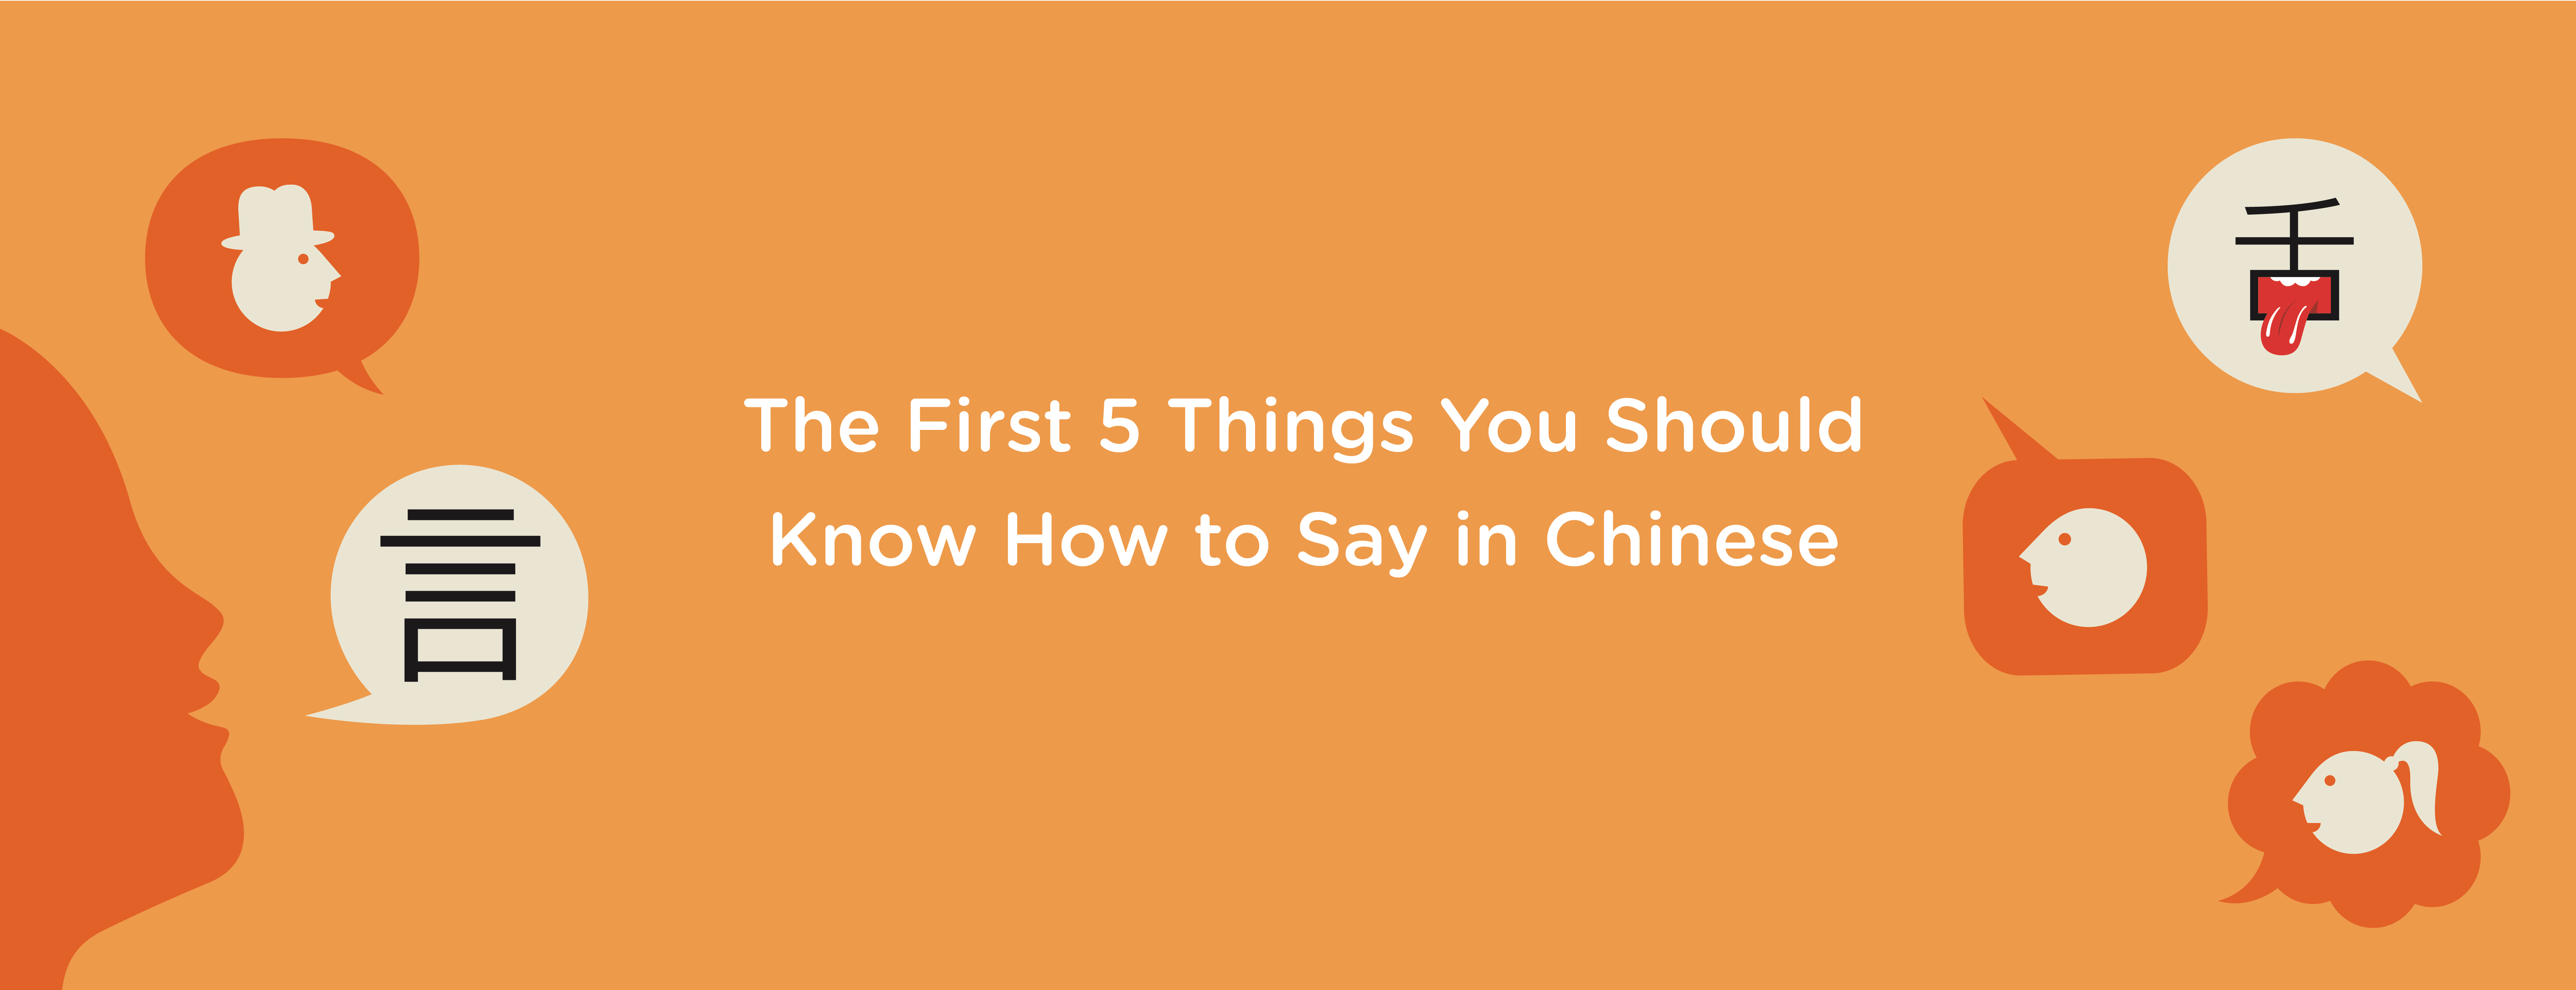 Blog The First 5 Things You Should Know How To Say In Chinese